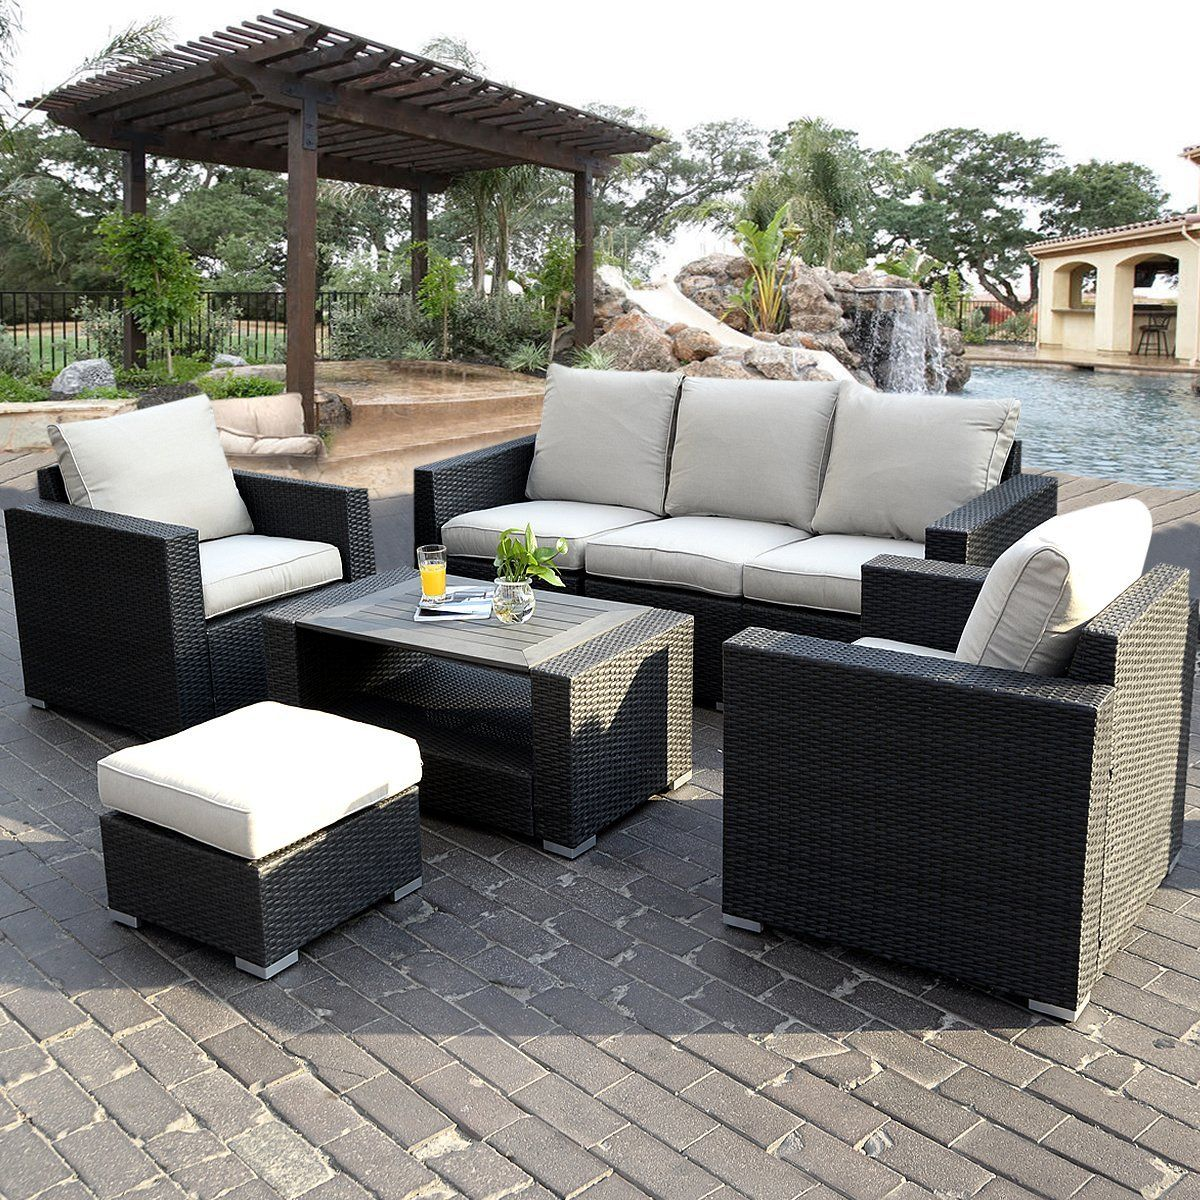 Garden Furniture Corner Sofa Ebay Fds 7pc Rattan Outdoor Garden Furniture Patio Corner Sofa Set Pe